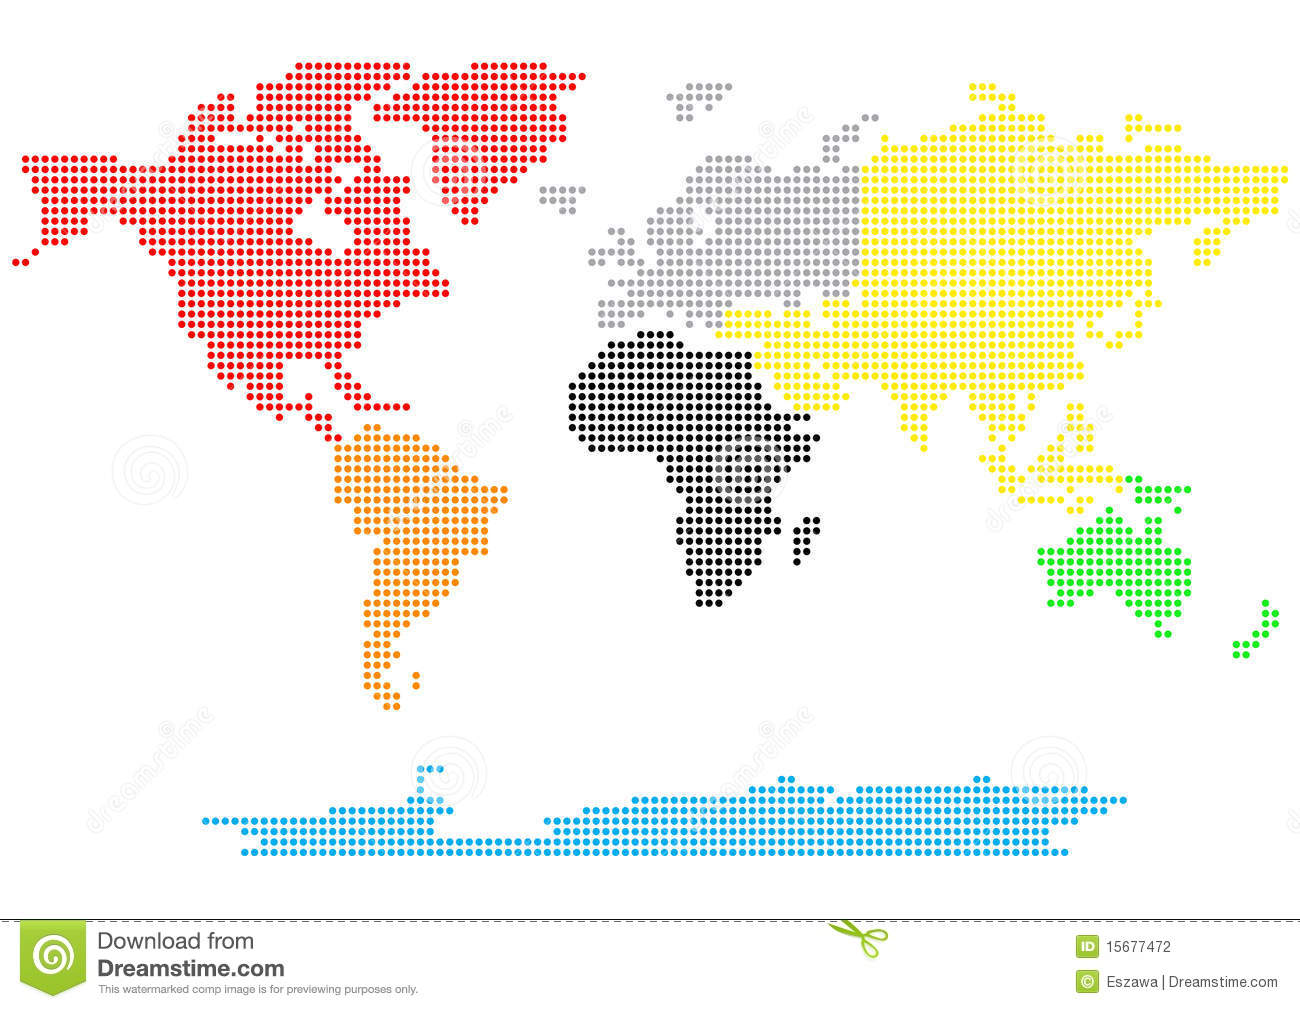 Dotted world map stock vector. Illustration of world   15677472